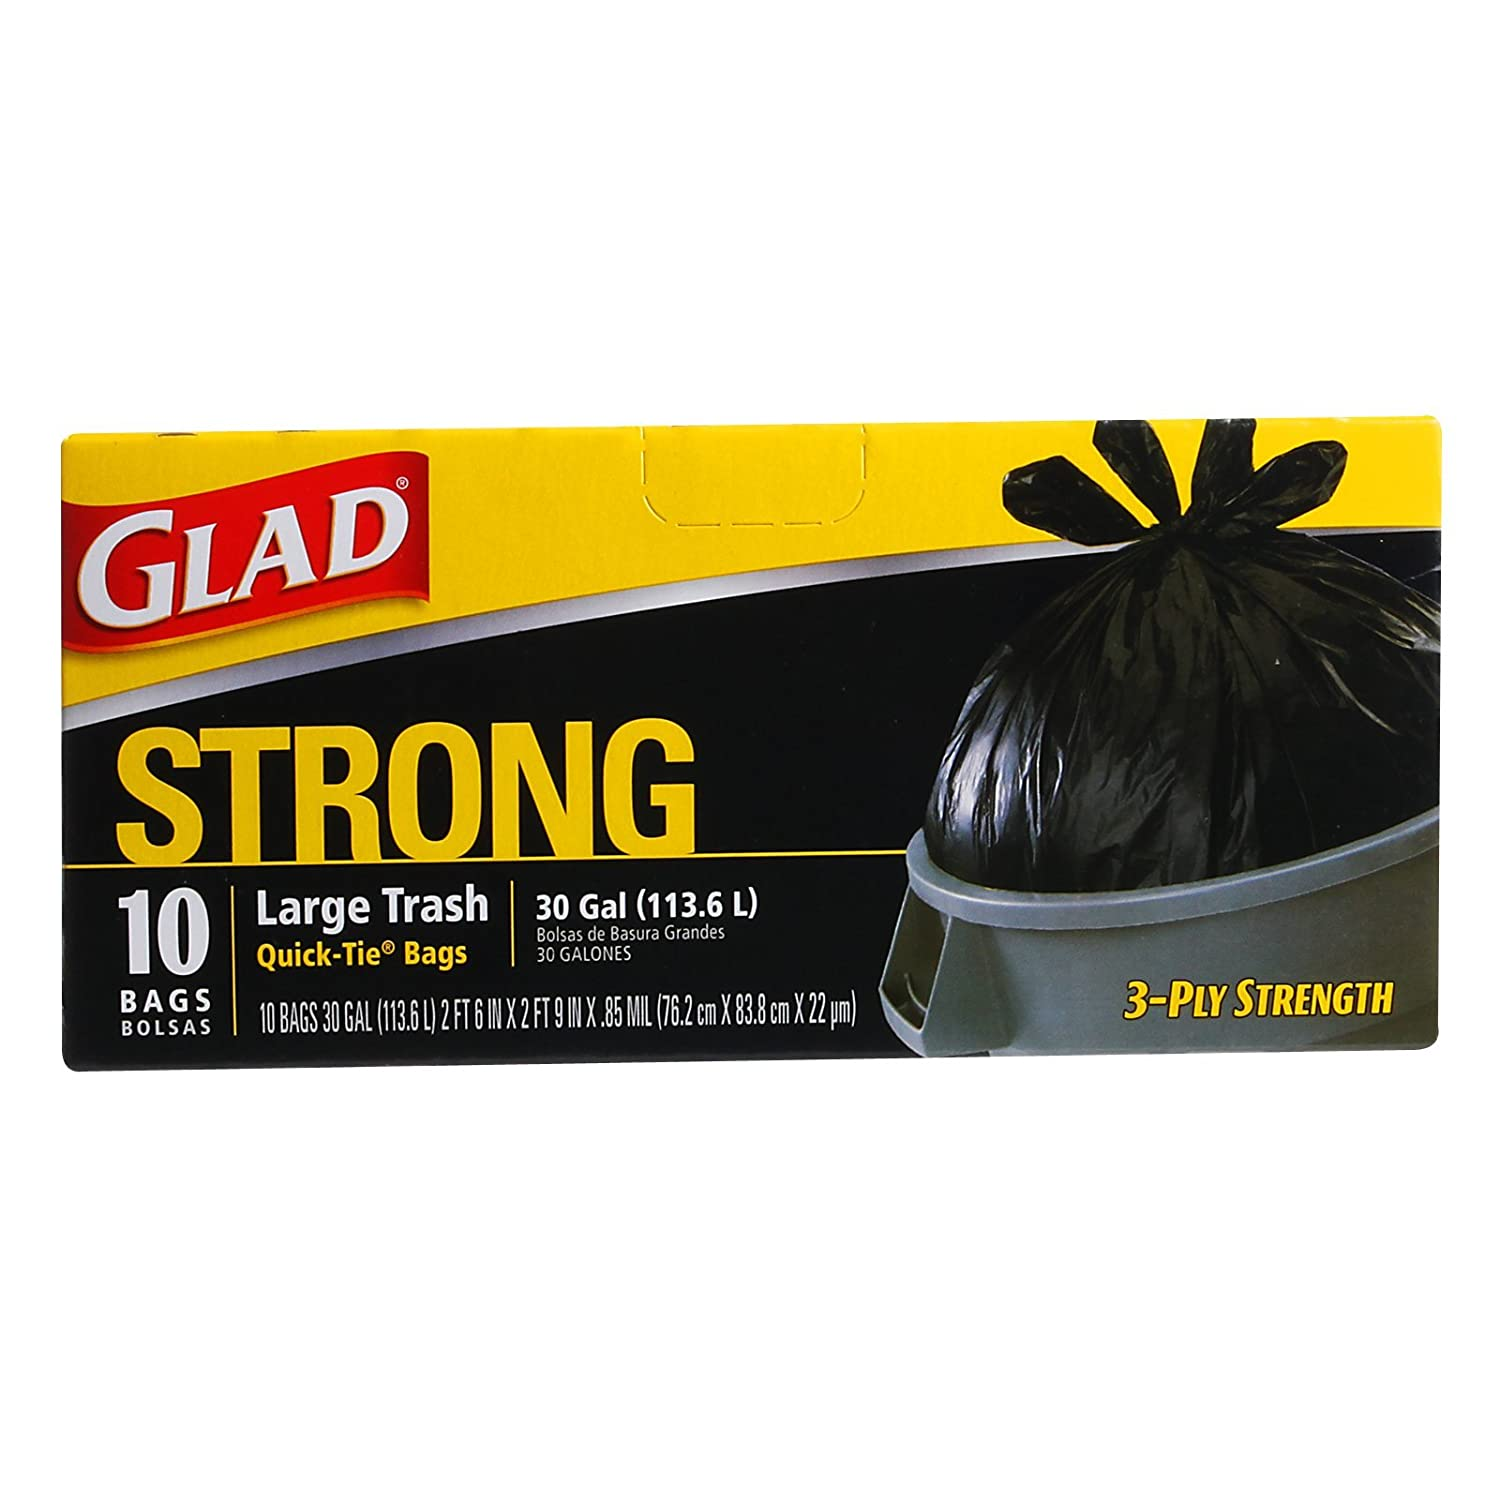 Amazon.com: Glad 30 Gal. Quick Tie Large Trash Bags 10 ct ...